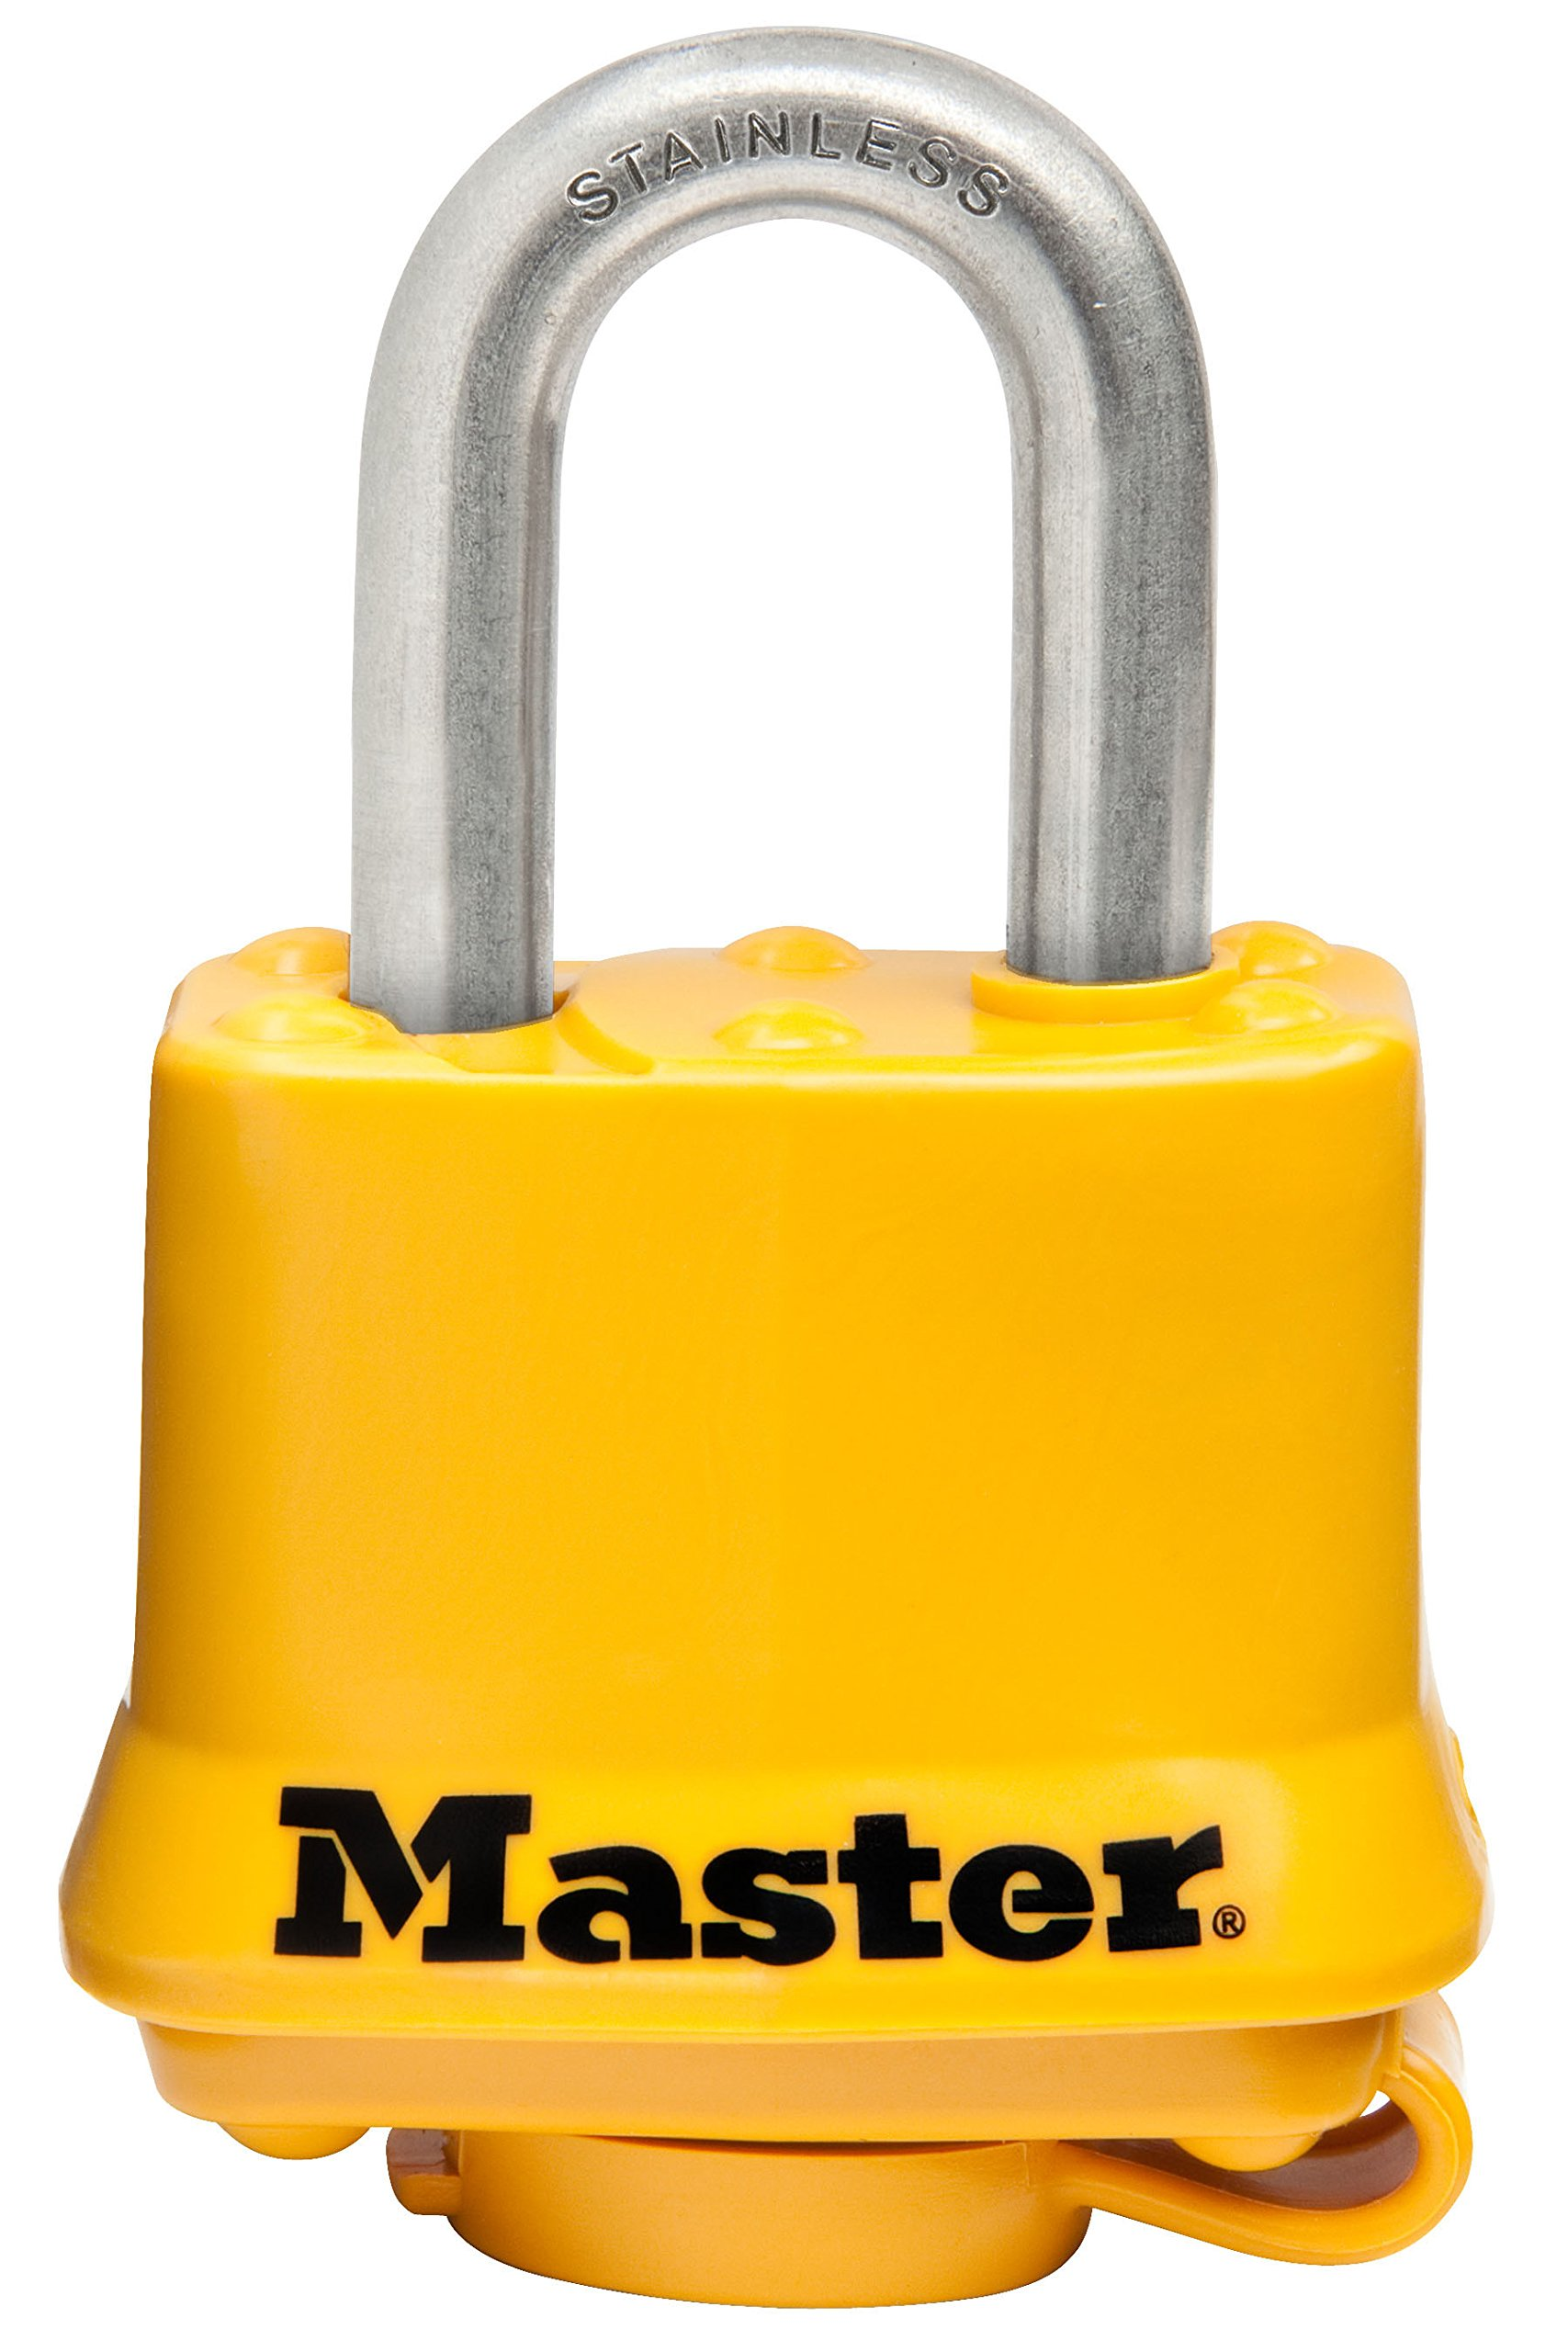 Master Lock Padlock, Covered Stainless Steel Lock, 1-9/16 in. Wide, Yellow, 315SSKAD